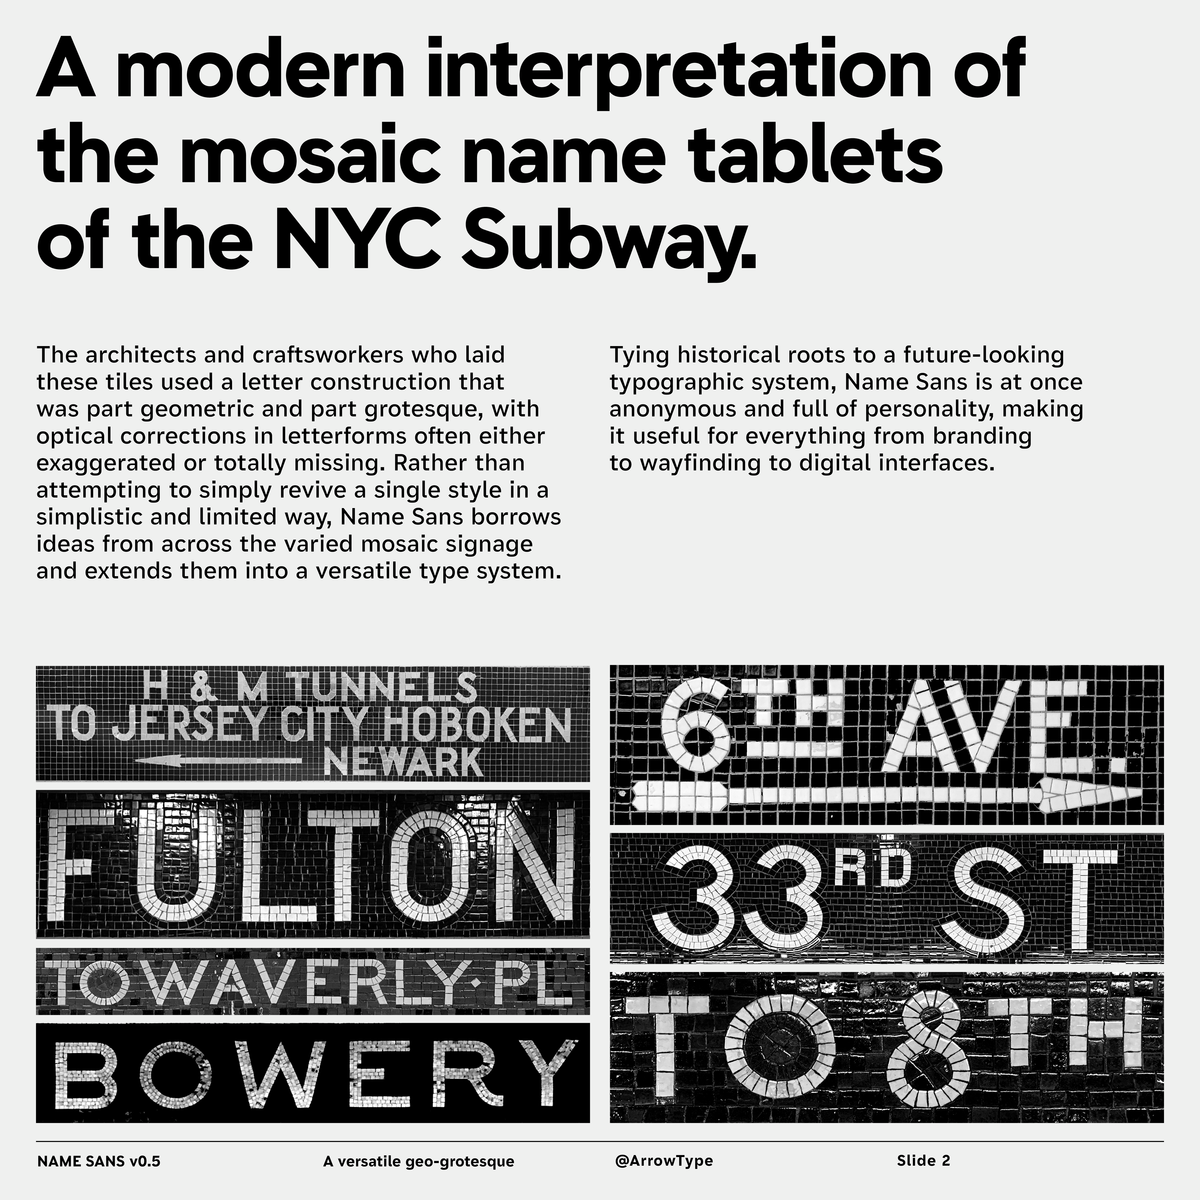 A photograph of the old mosaic name tablets from the NY Subway, one says 6th Ave and another Fulton